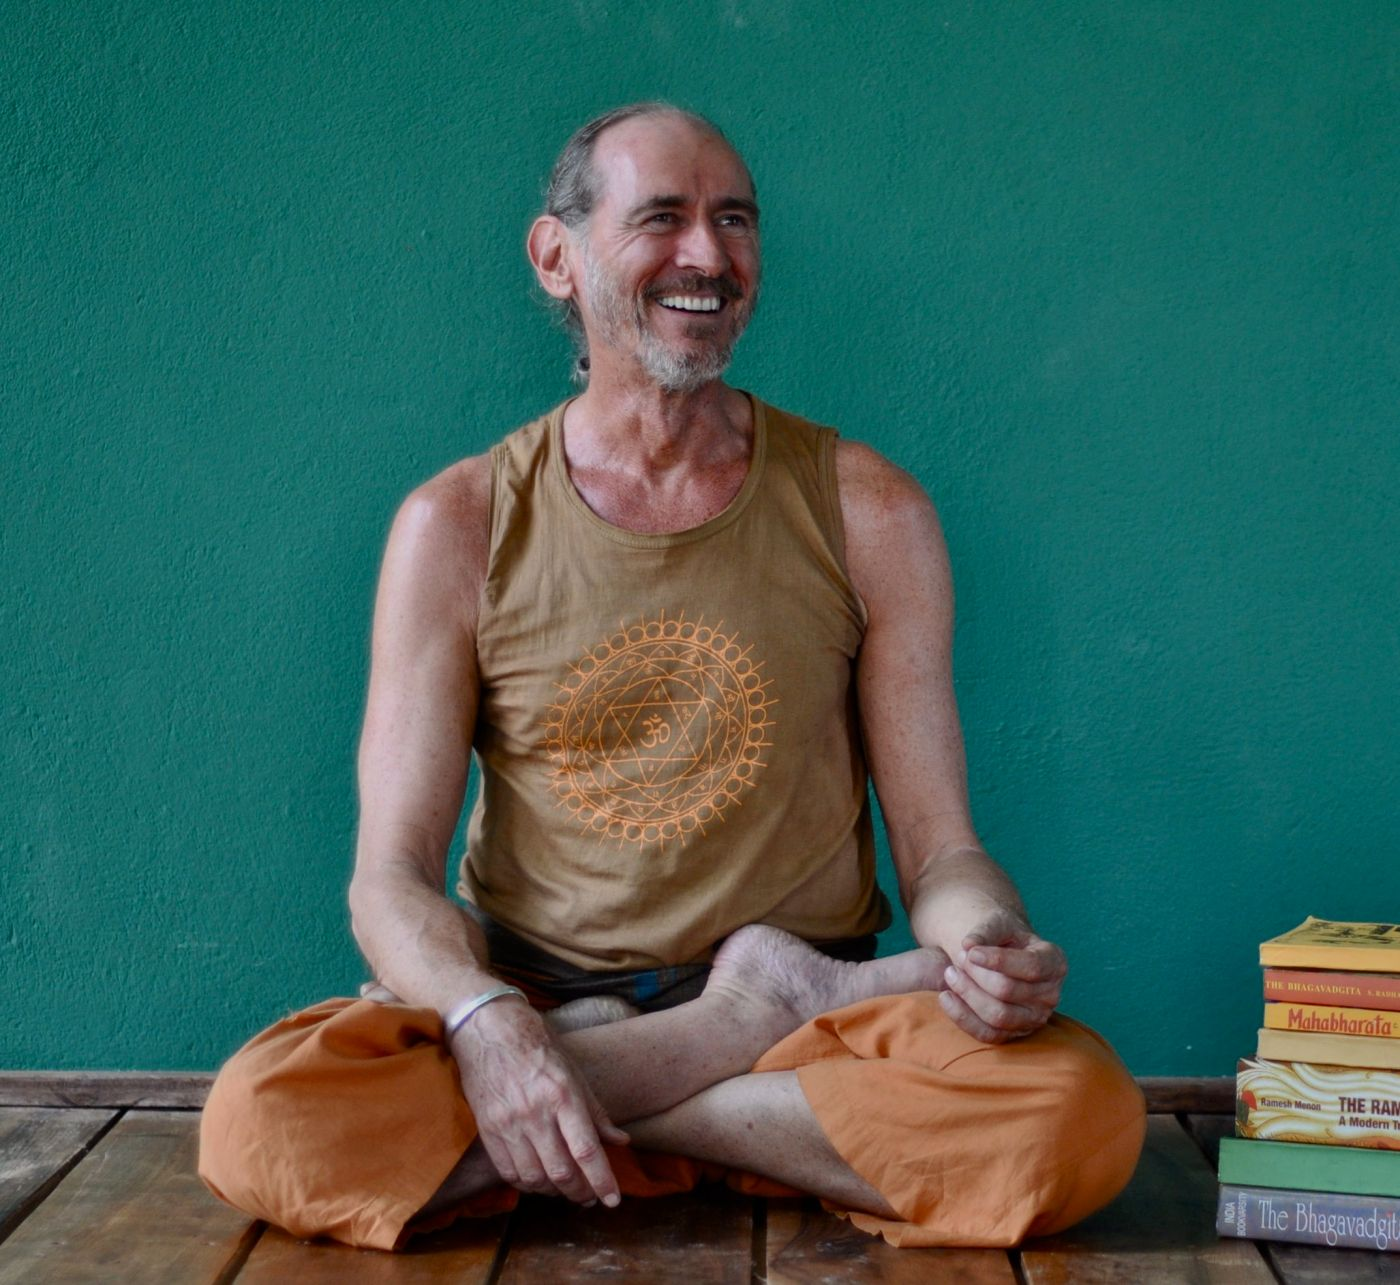 Emil Wendel, Conversations in Yoga